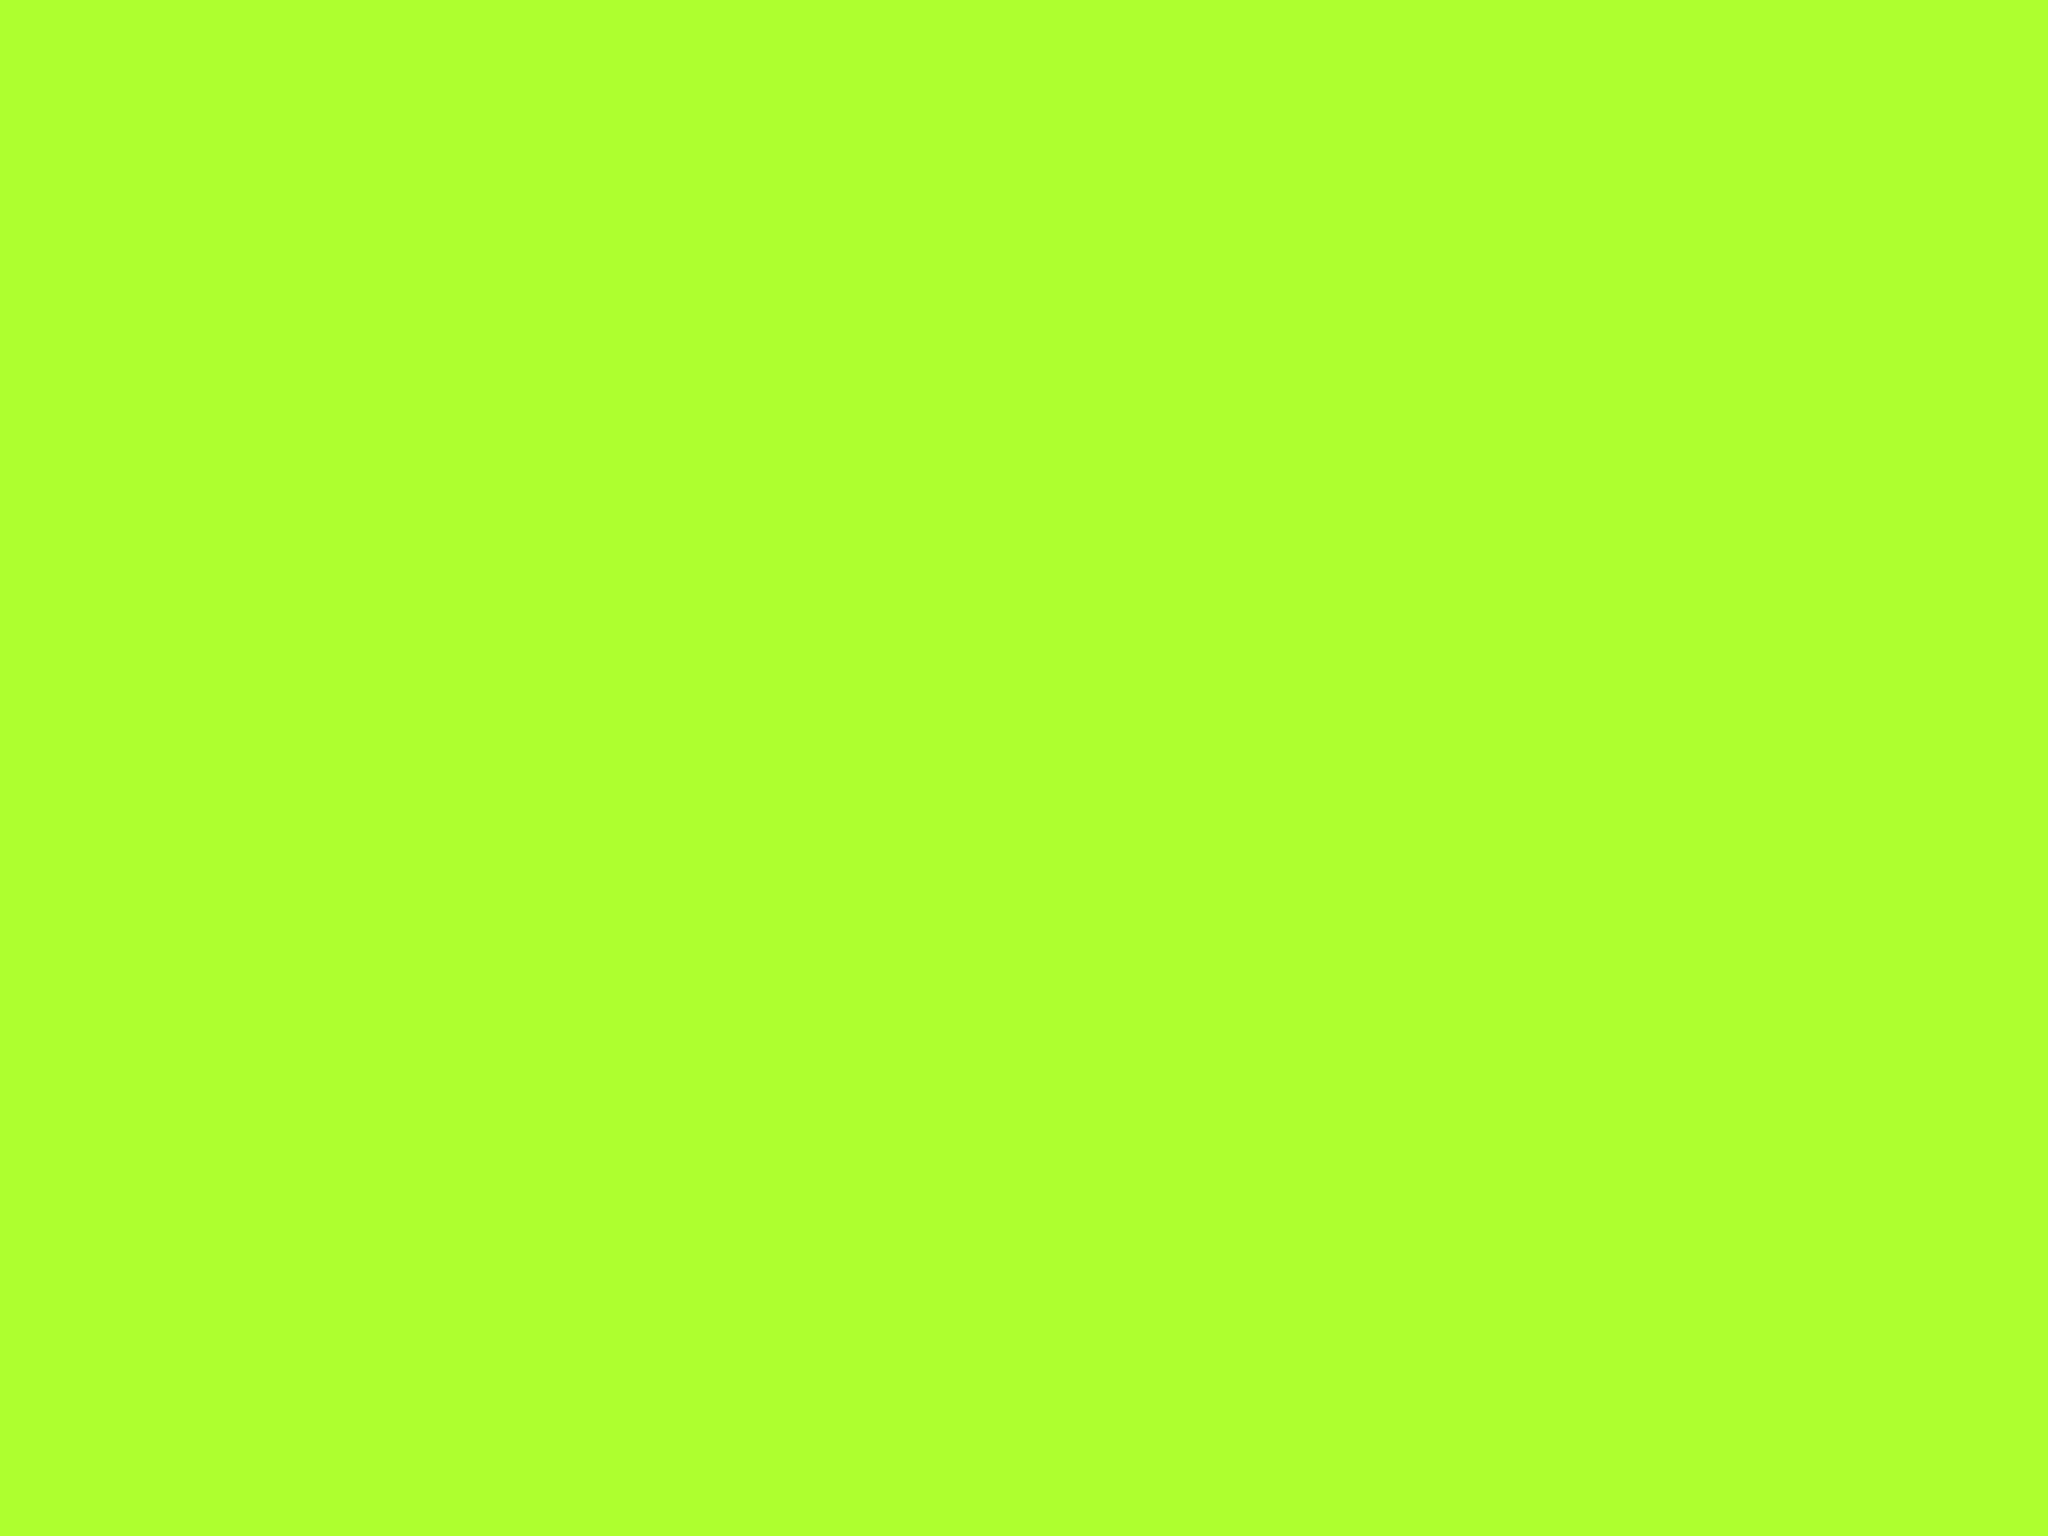 2048x1536 Green-yellow Solid Color Background